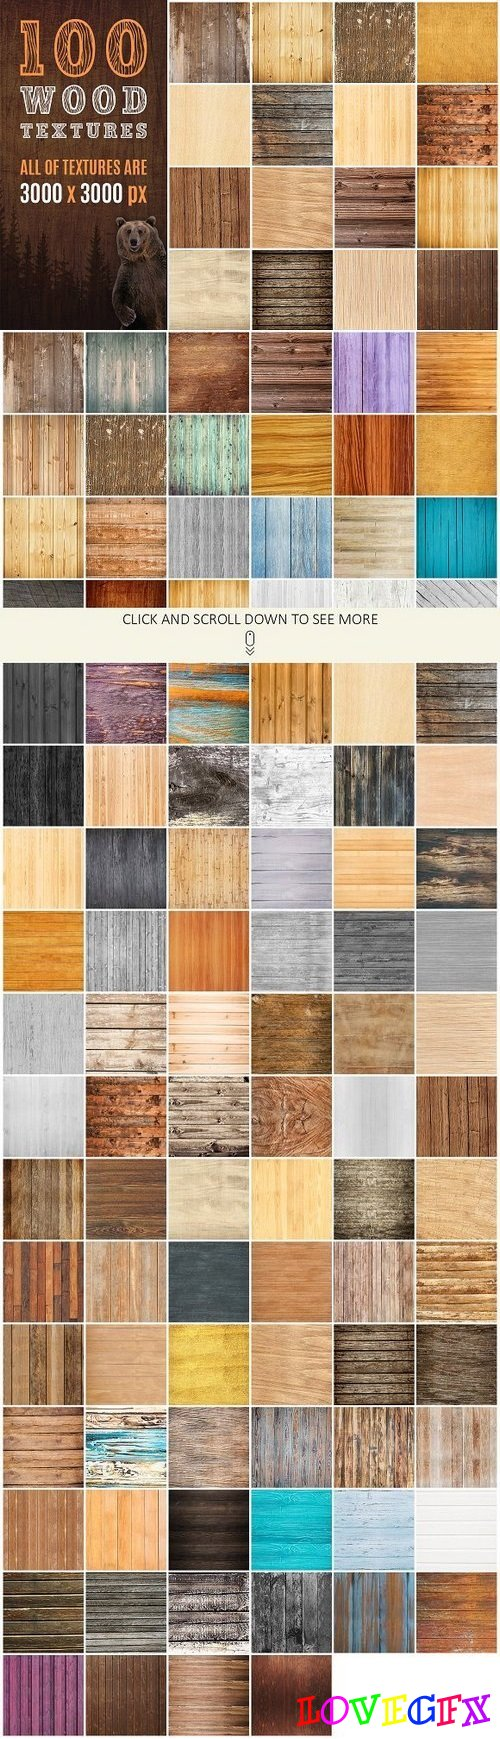 100 Real Wood Textures 1437724